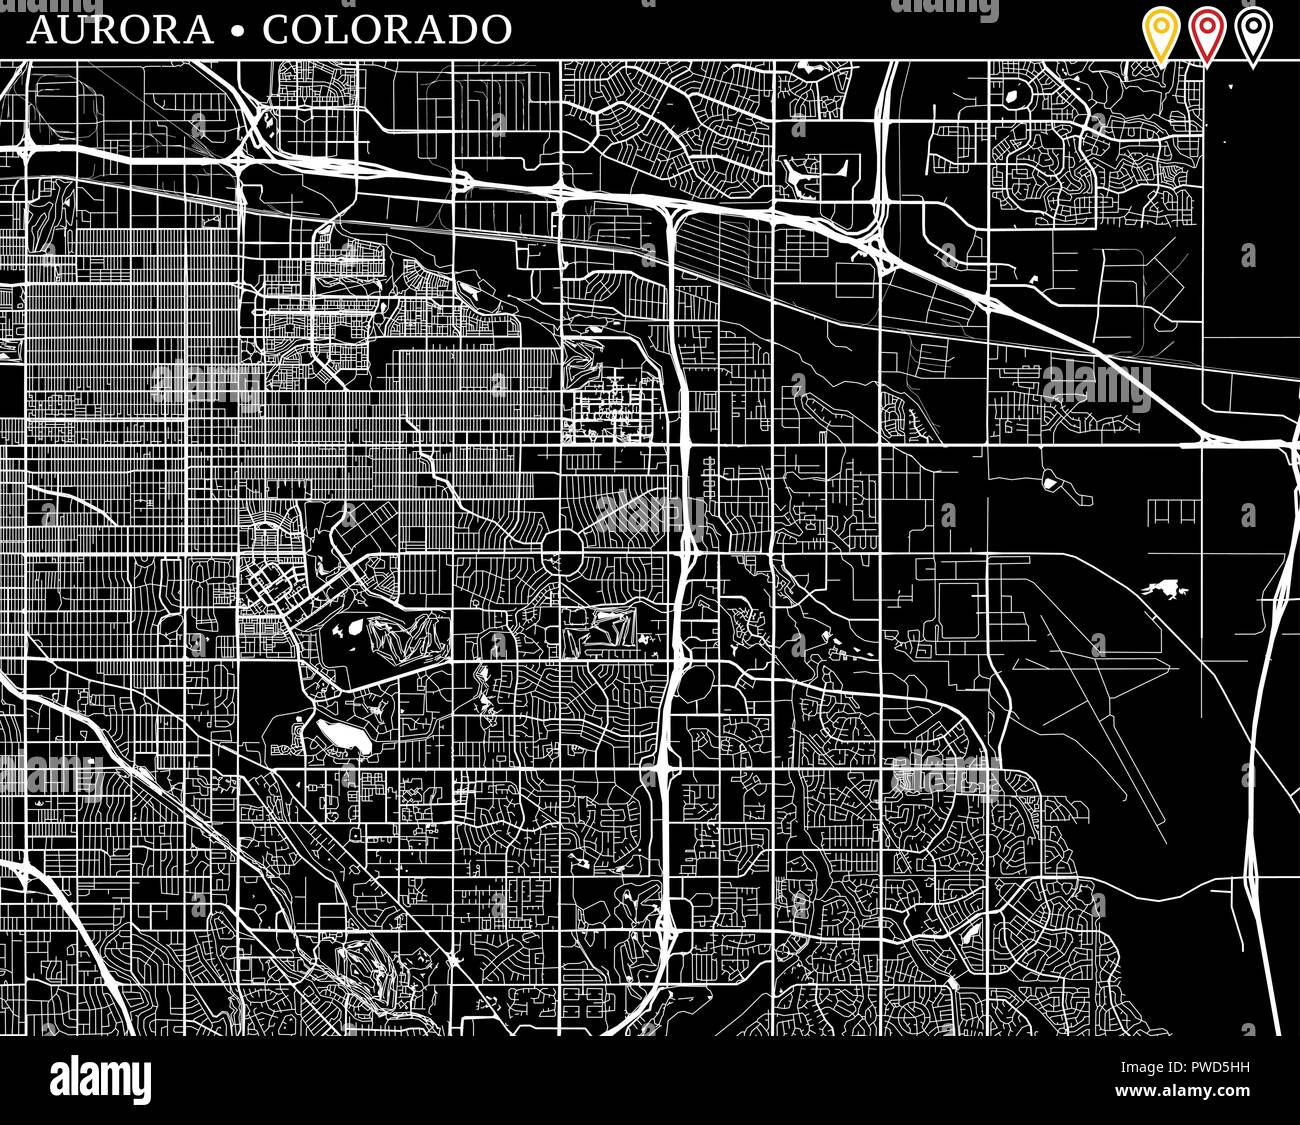 Simple map of Aurora, Colorado, USA. Black and white version for ...